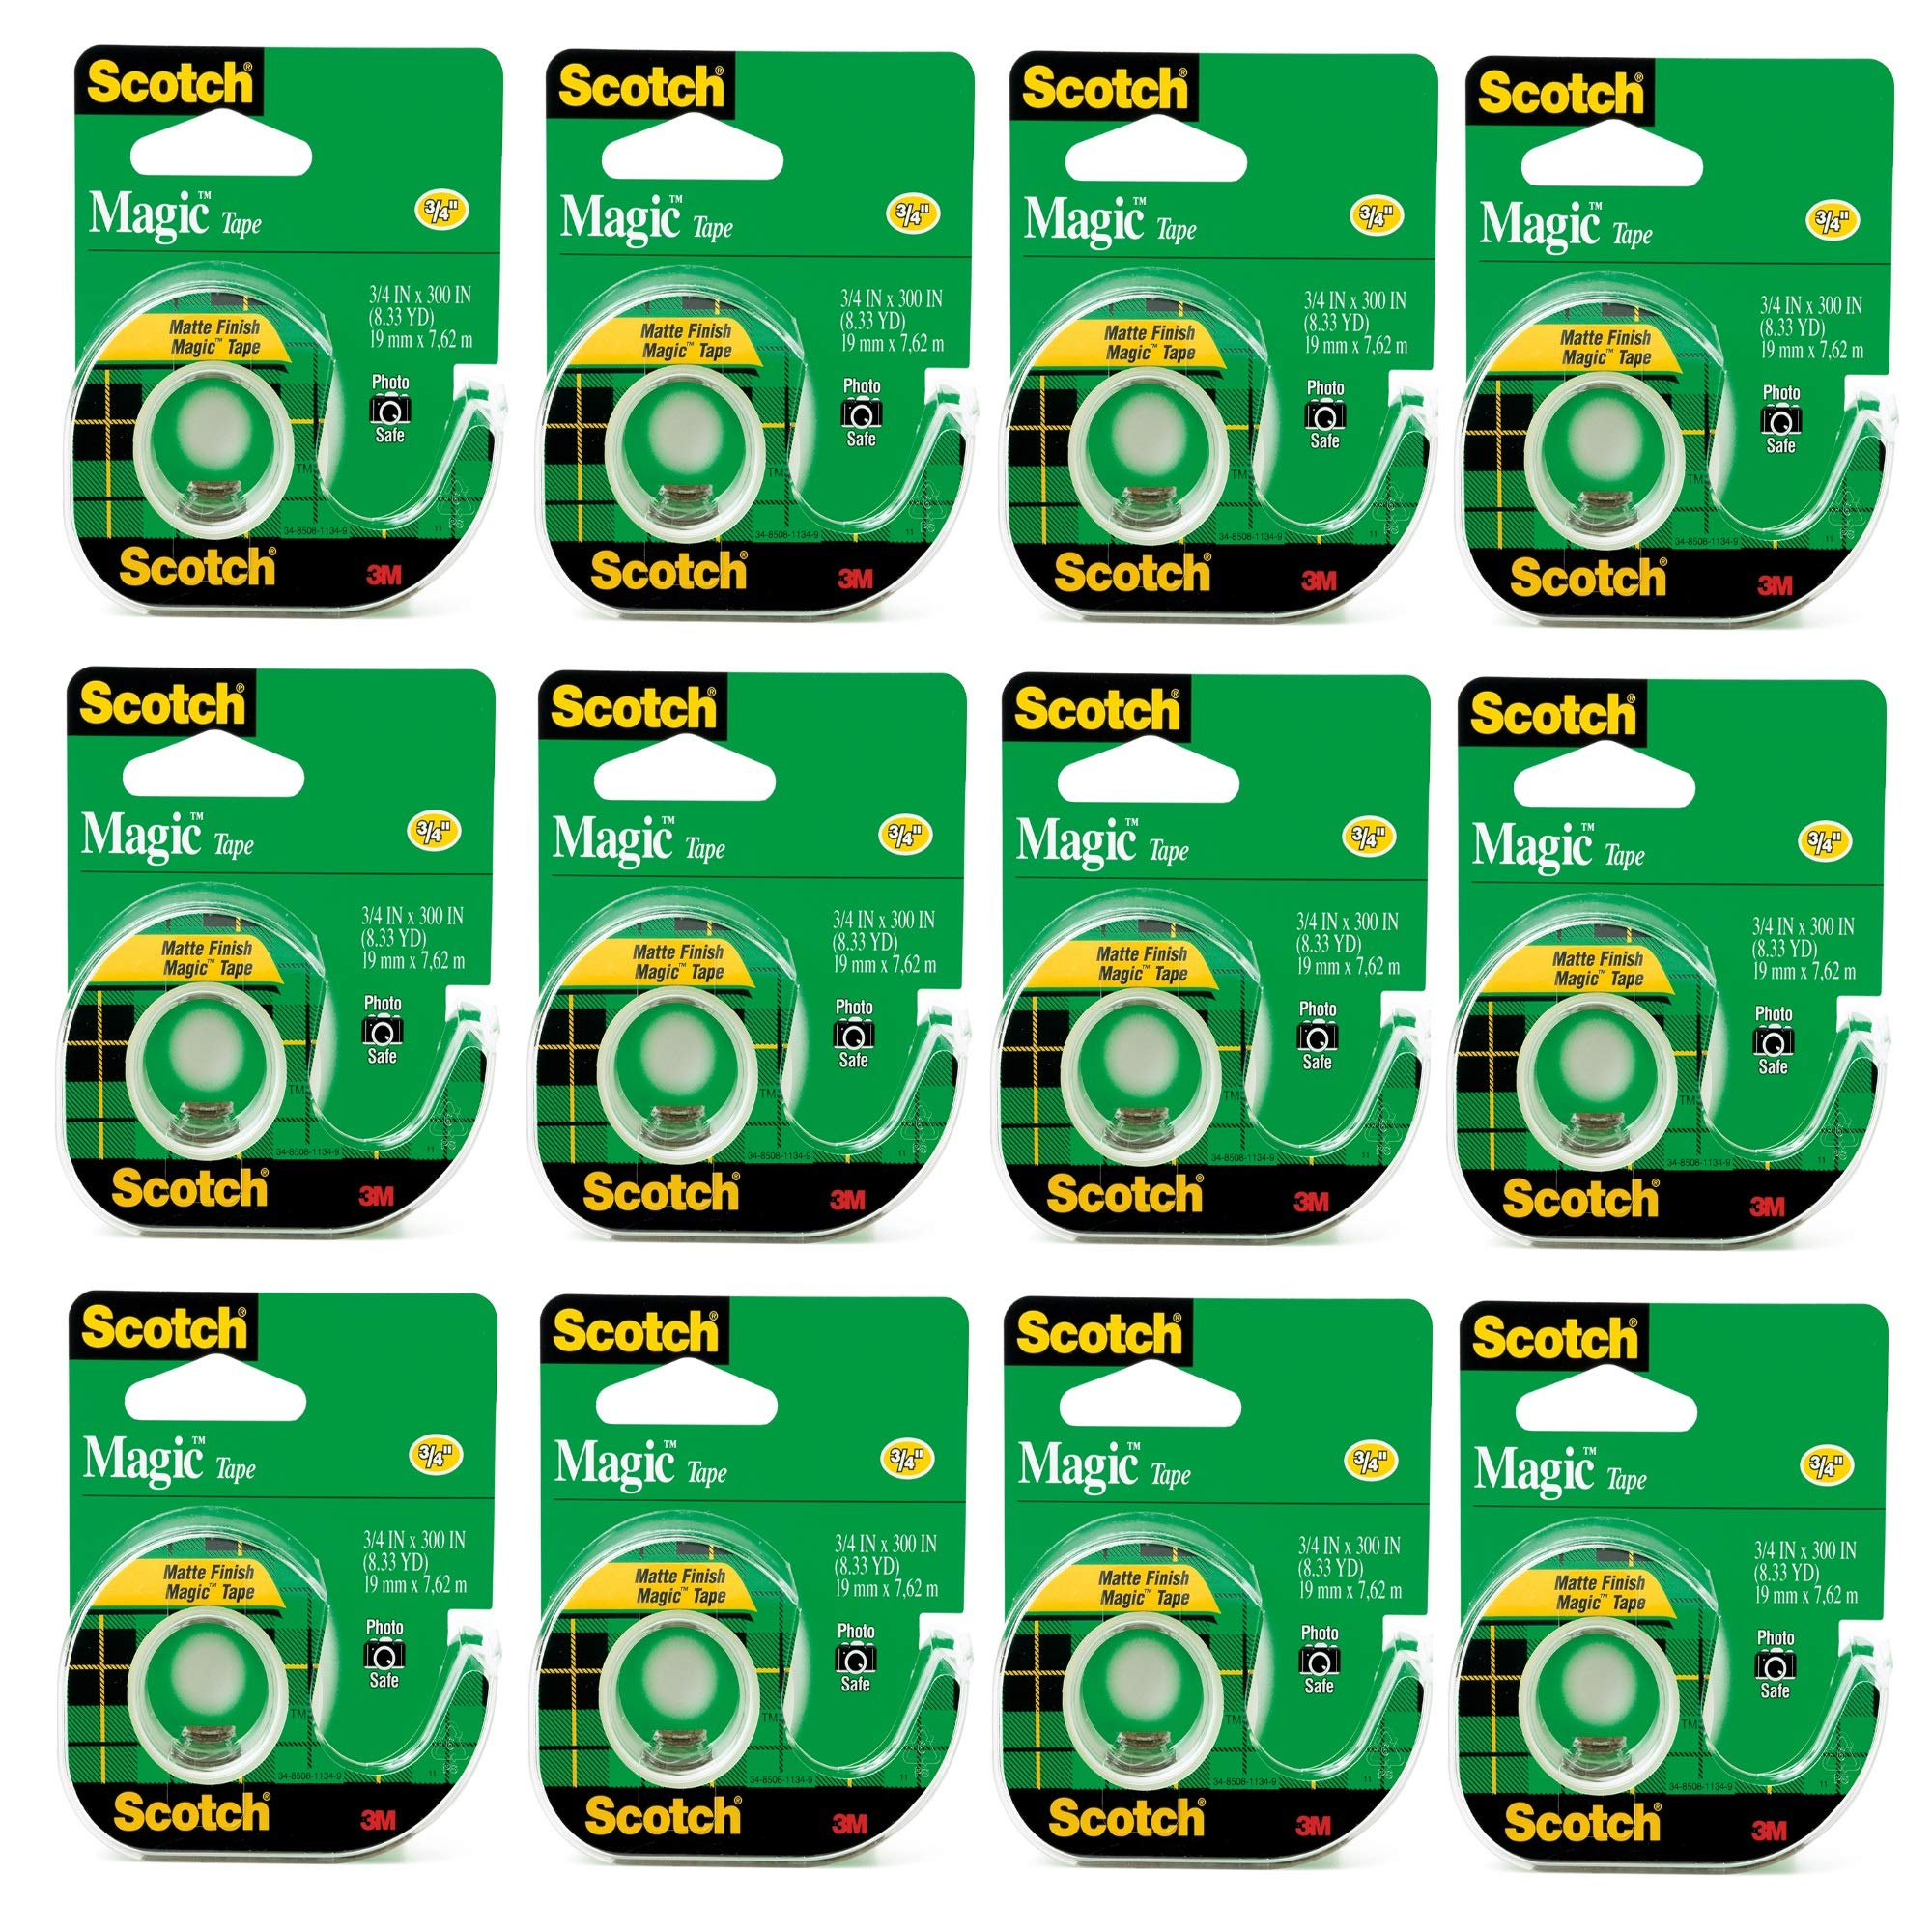 Scotch 3105 3/4 in. x 300 in. Scotch Magic Tape (Pack of 12) by Scotch Brand